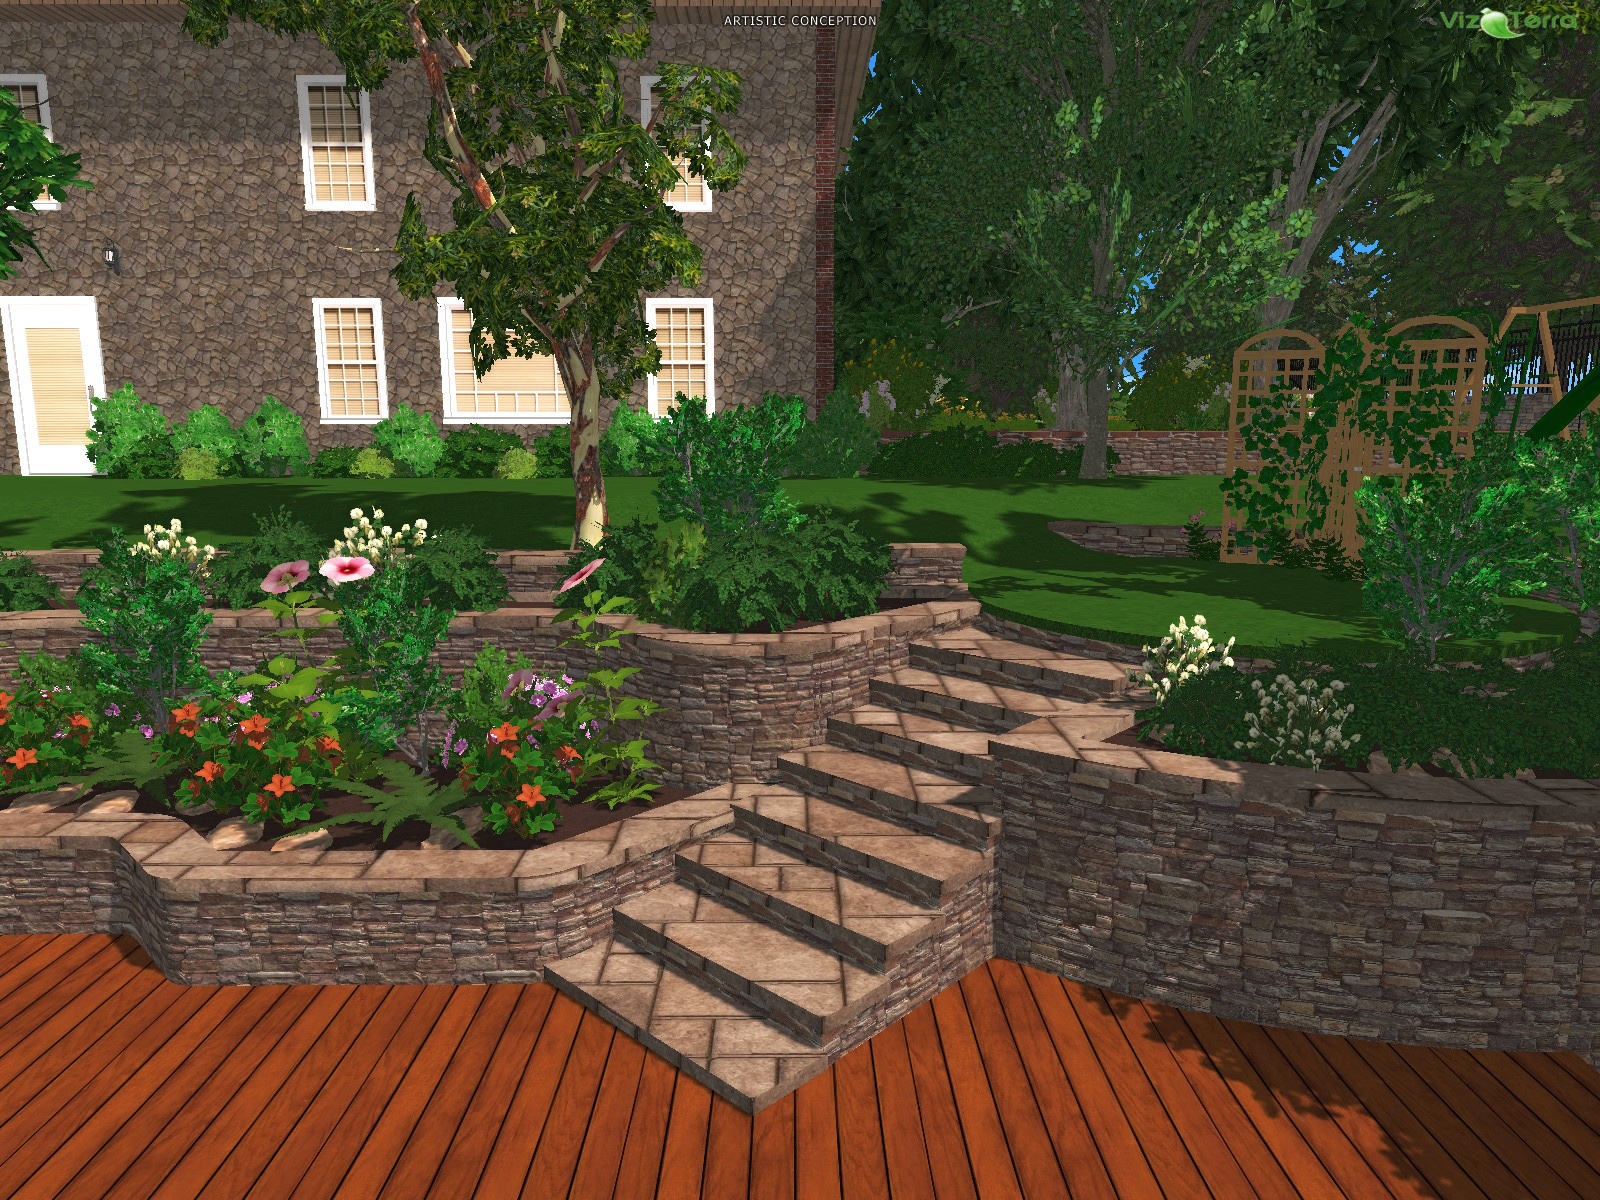 Indi scaping design design your own backyard landscape online free - Design your backyard online ...